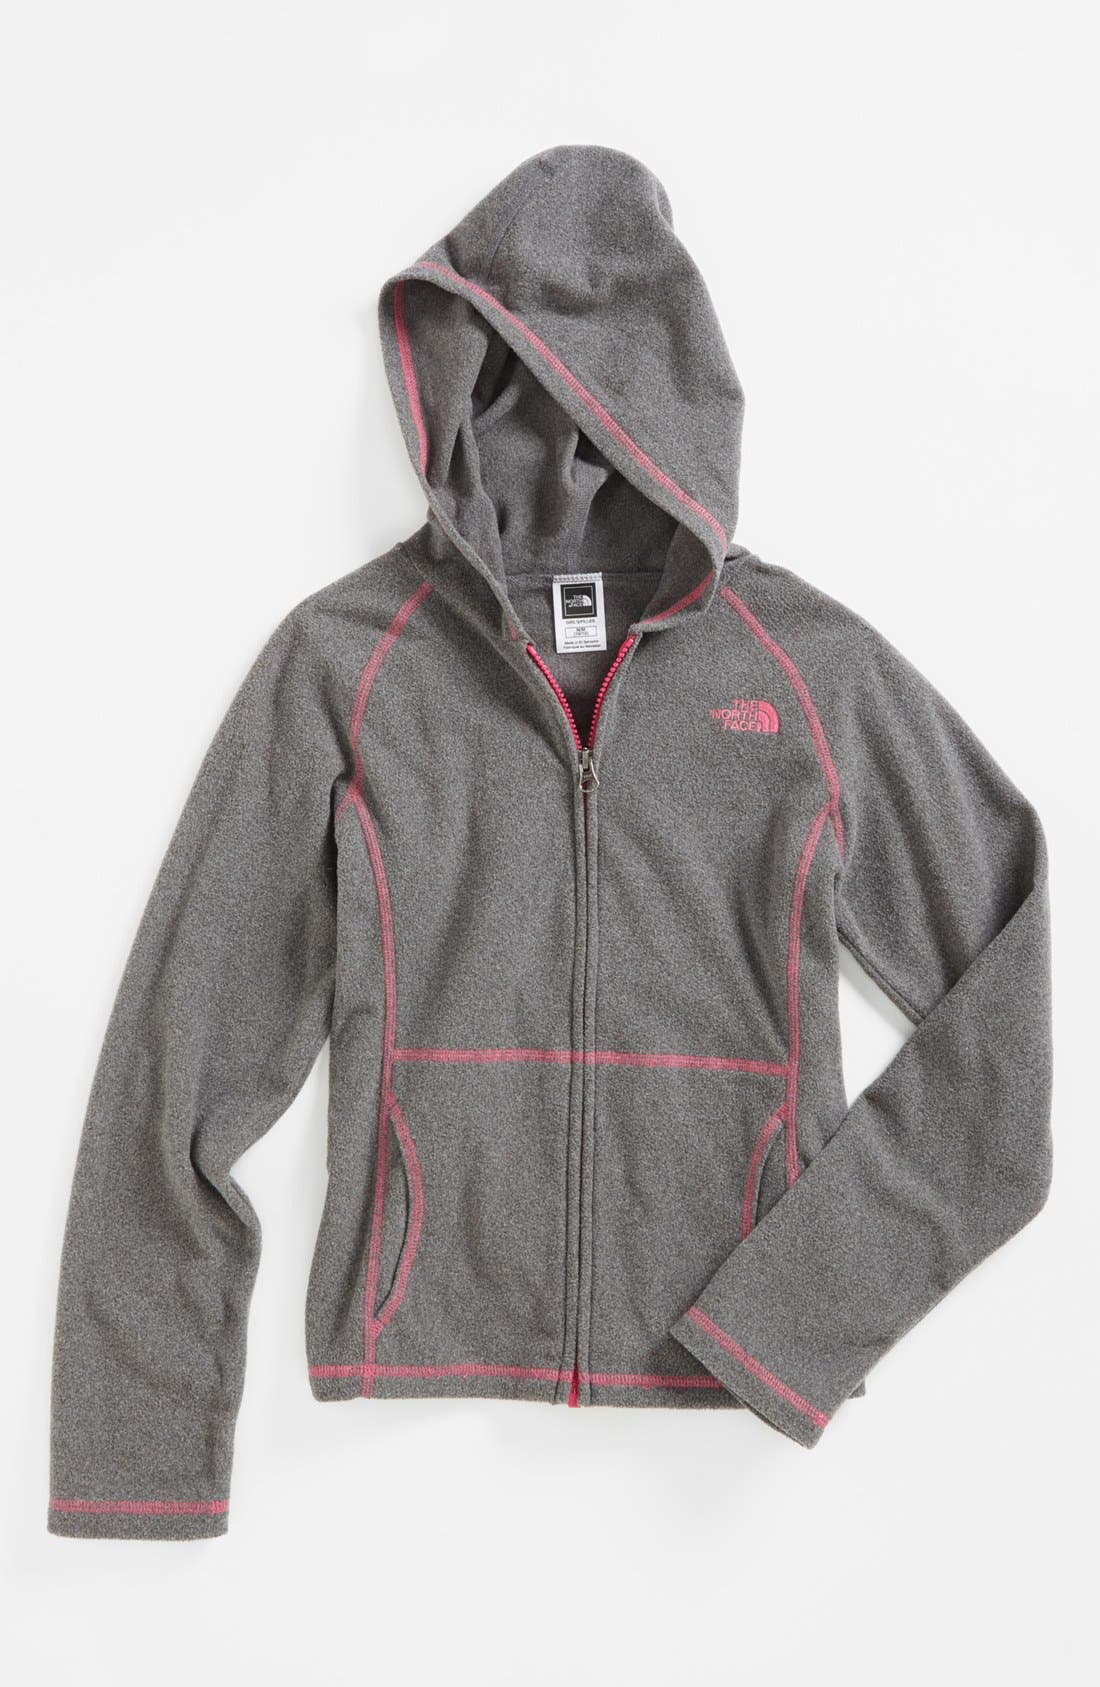 Main Image - The North Face 'Glacier' Full Zip Hoodie (Little Girls & Big Girls)